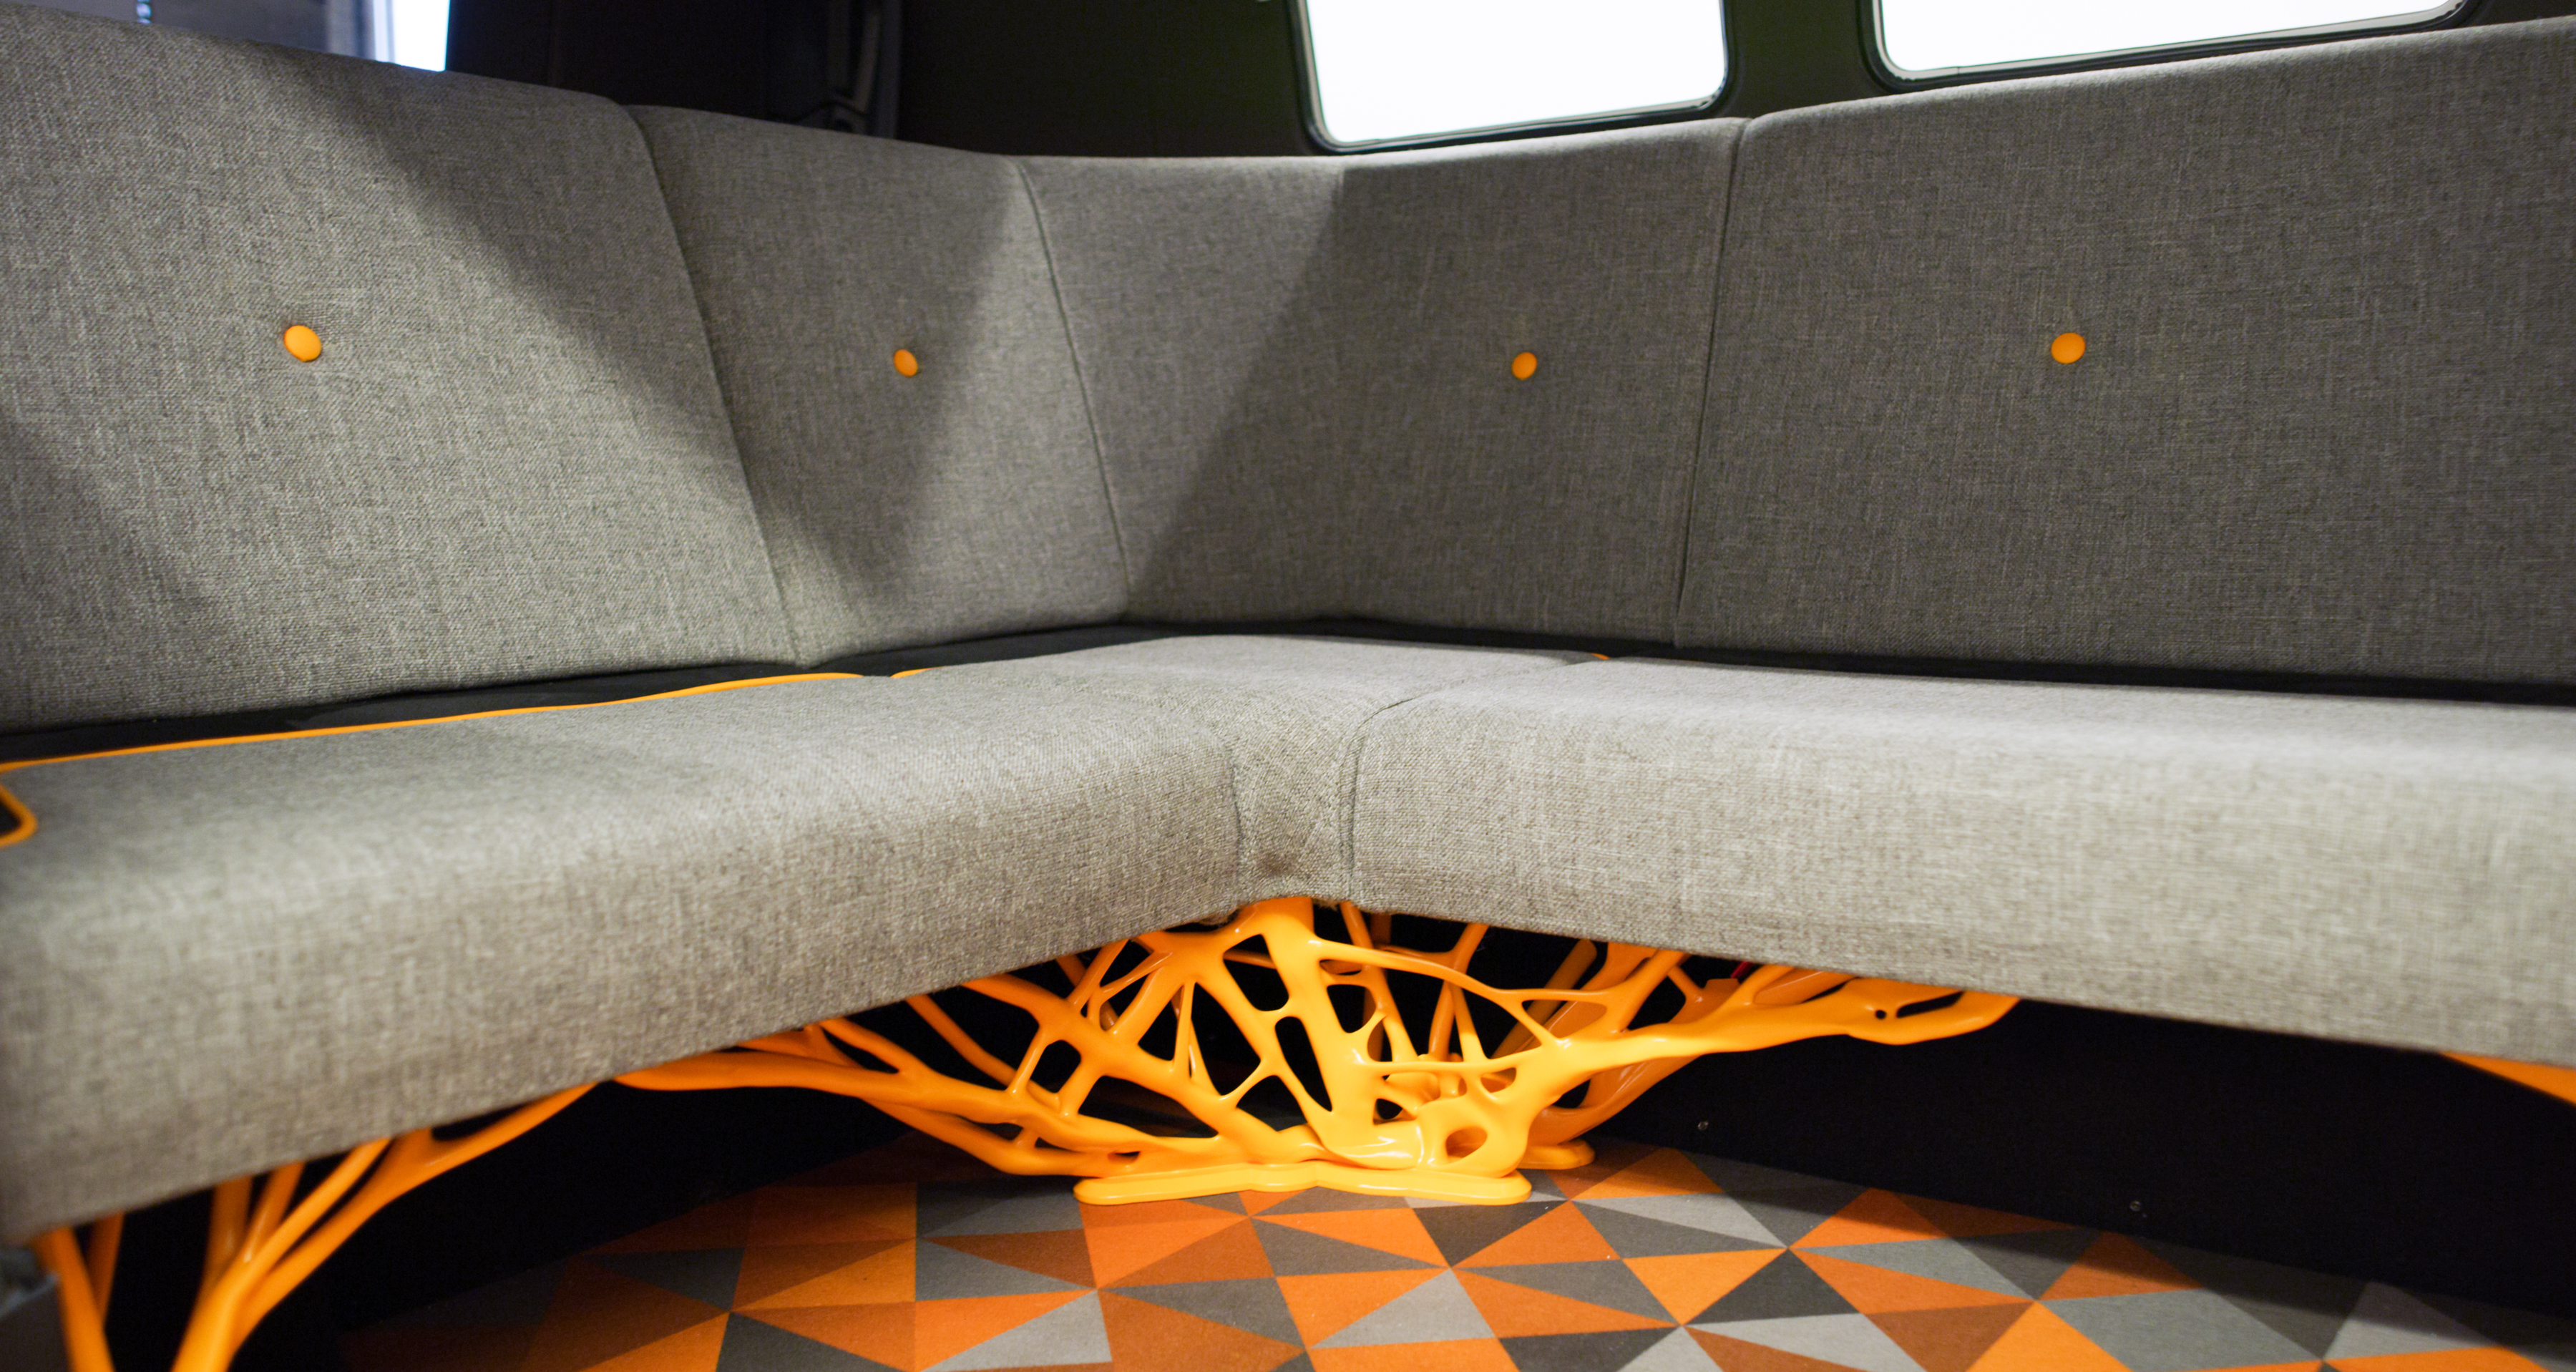 The 3D printed seating base of the Type 20 concept car. Photo via Volkswagen.